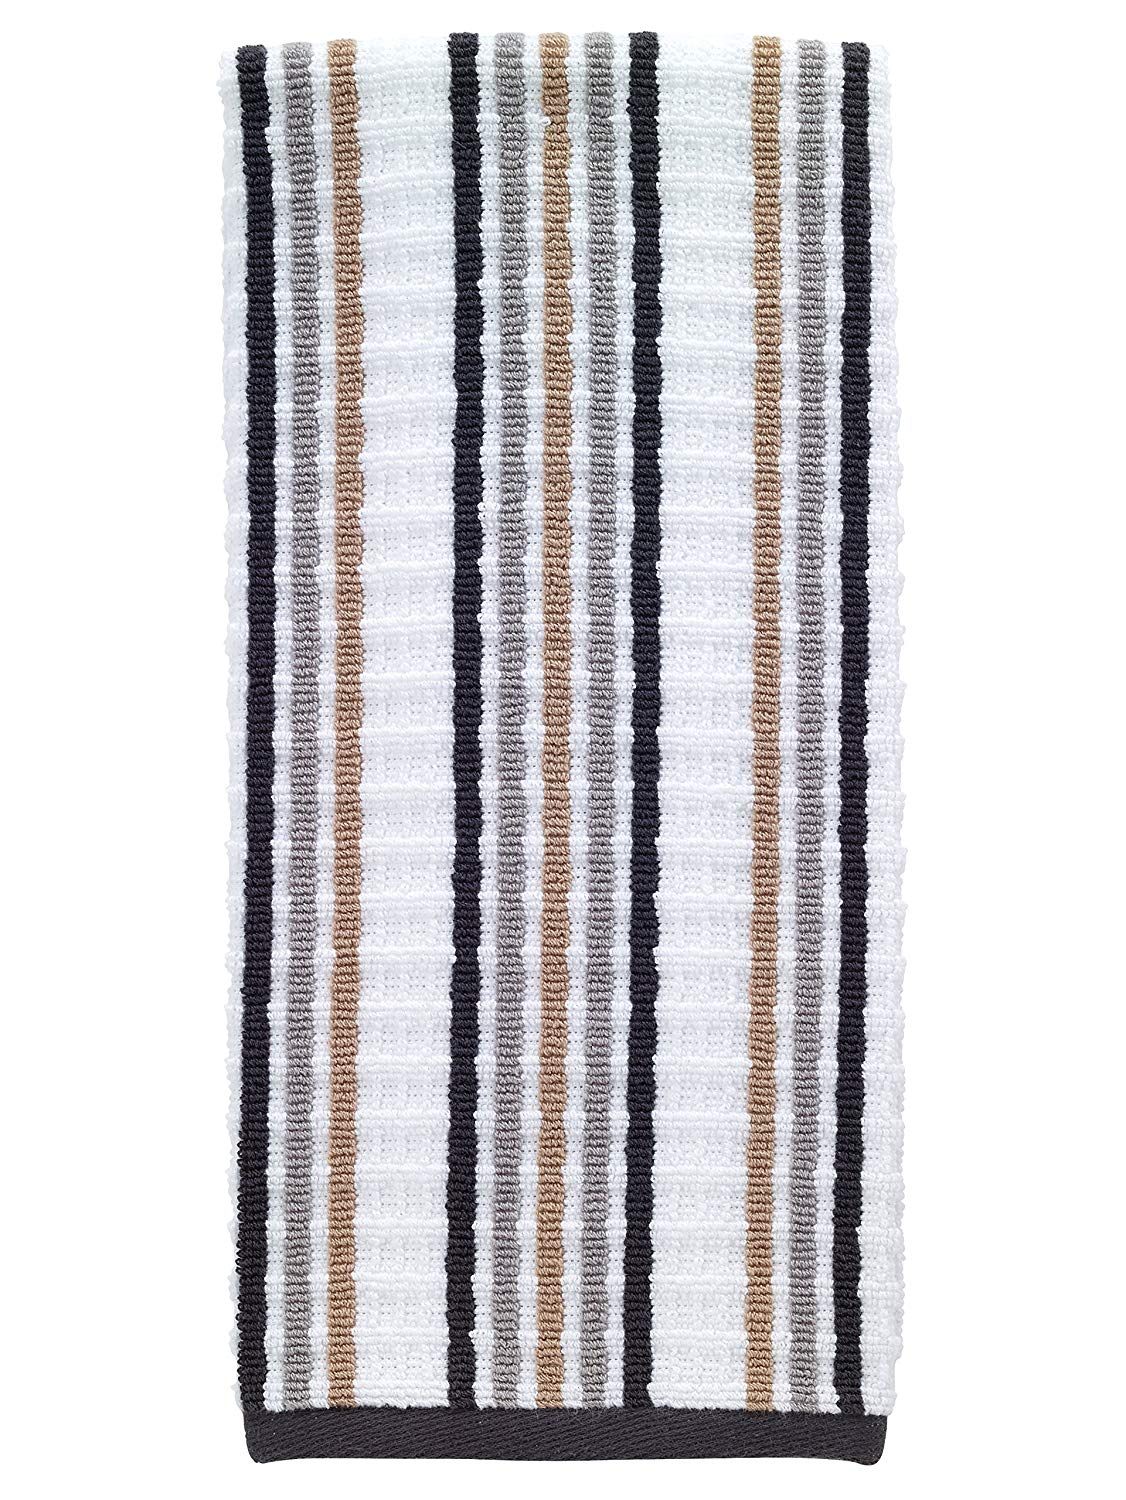 "T-fal Textiles Striped Waffle 100% Terry Cotton, Highly Absorbent, Anti-Microbial, Oversized Kitchen Towel, 16"" x 28"", Neutral"